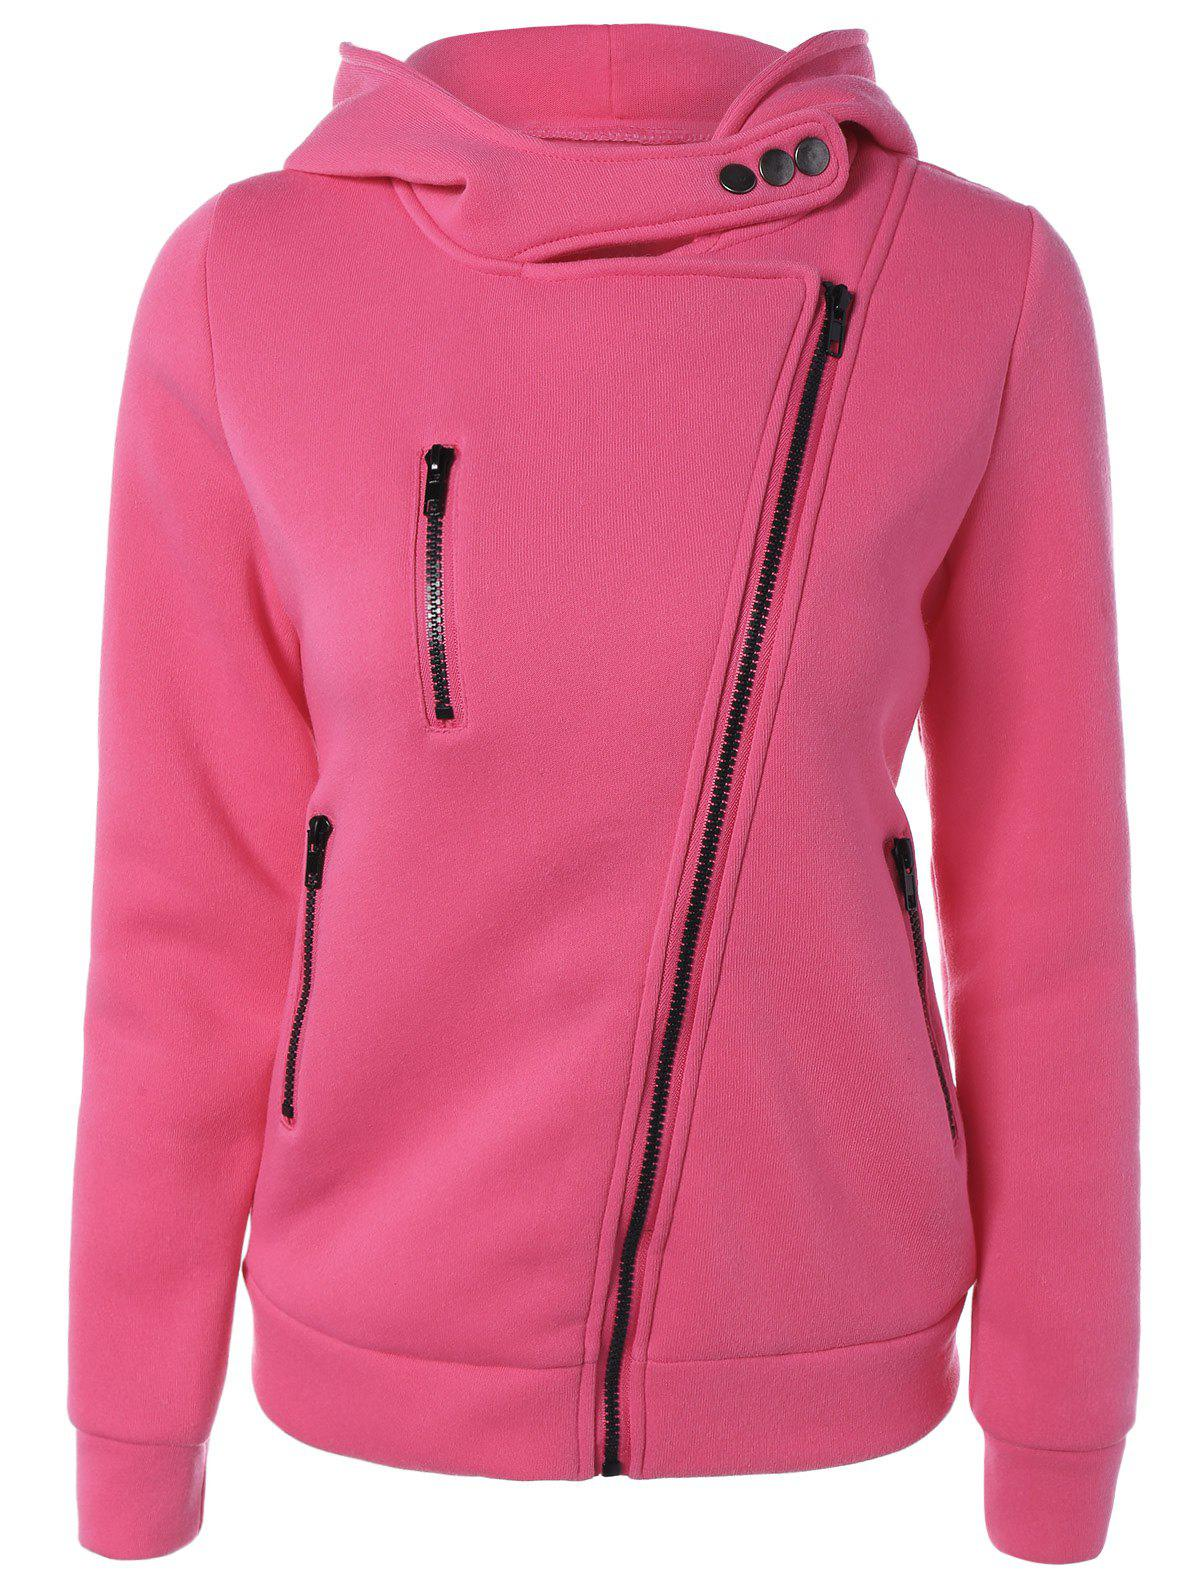 Fashion Inclined Zipper Buttoned Hoodie